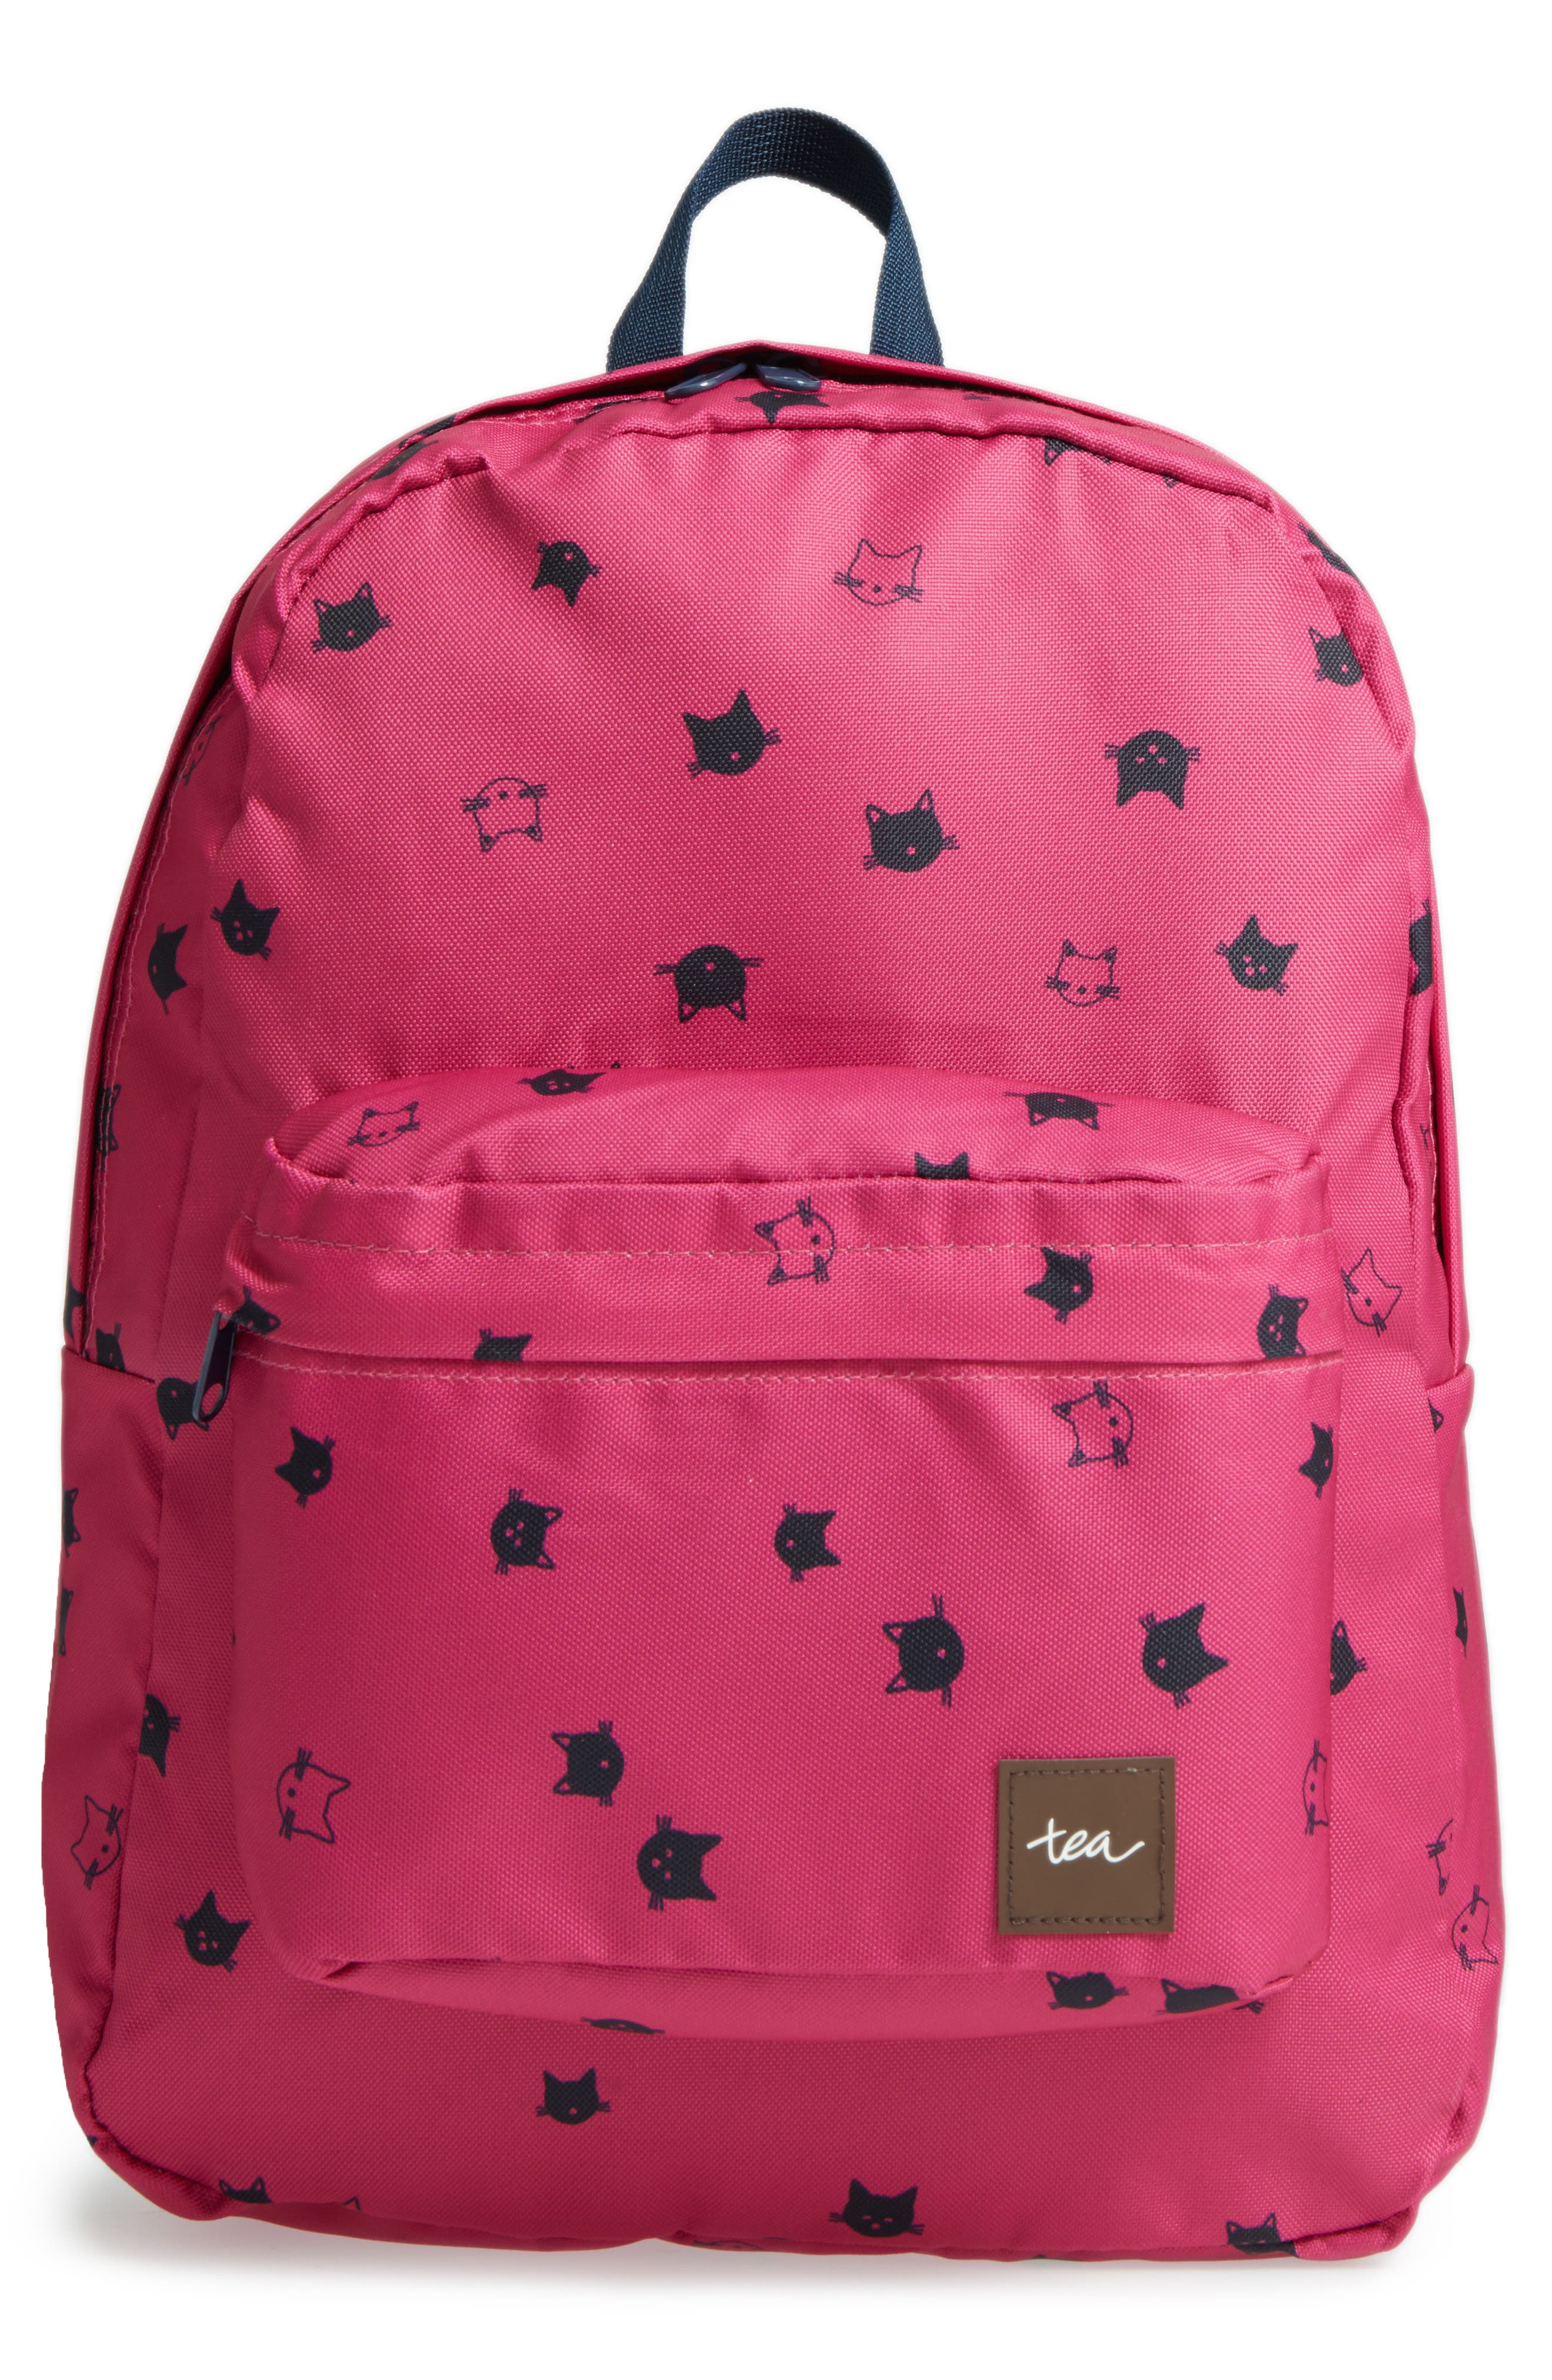 Moggy Cat Backpack,                             Main thumbnail 1, color,                             650